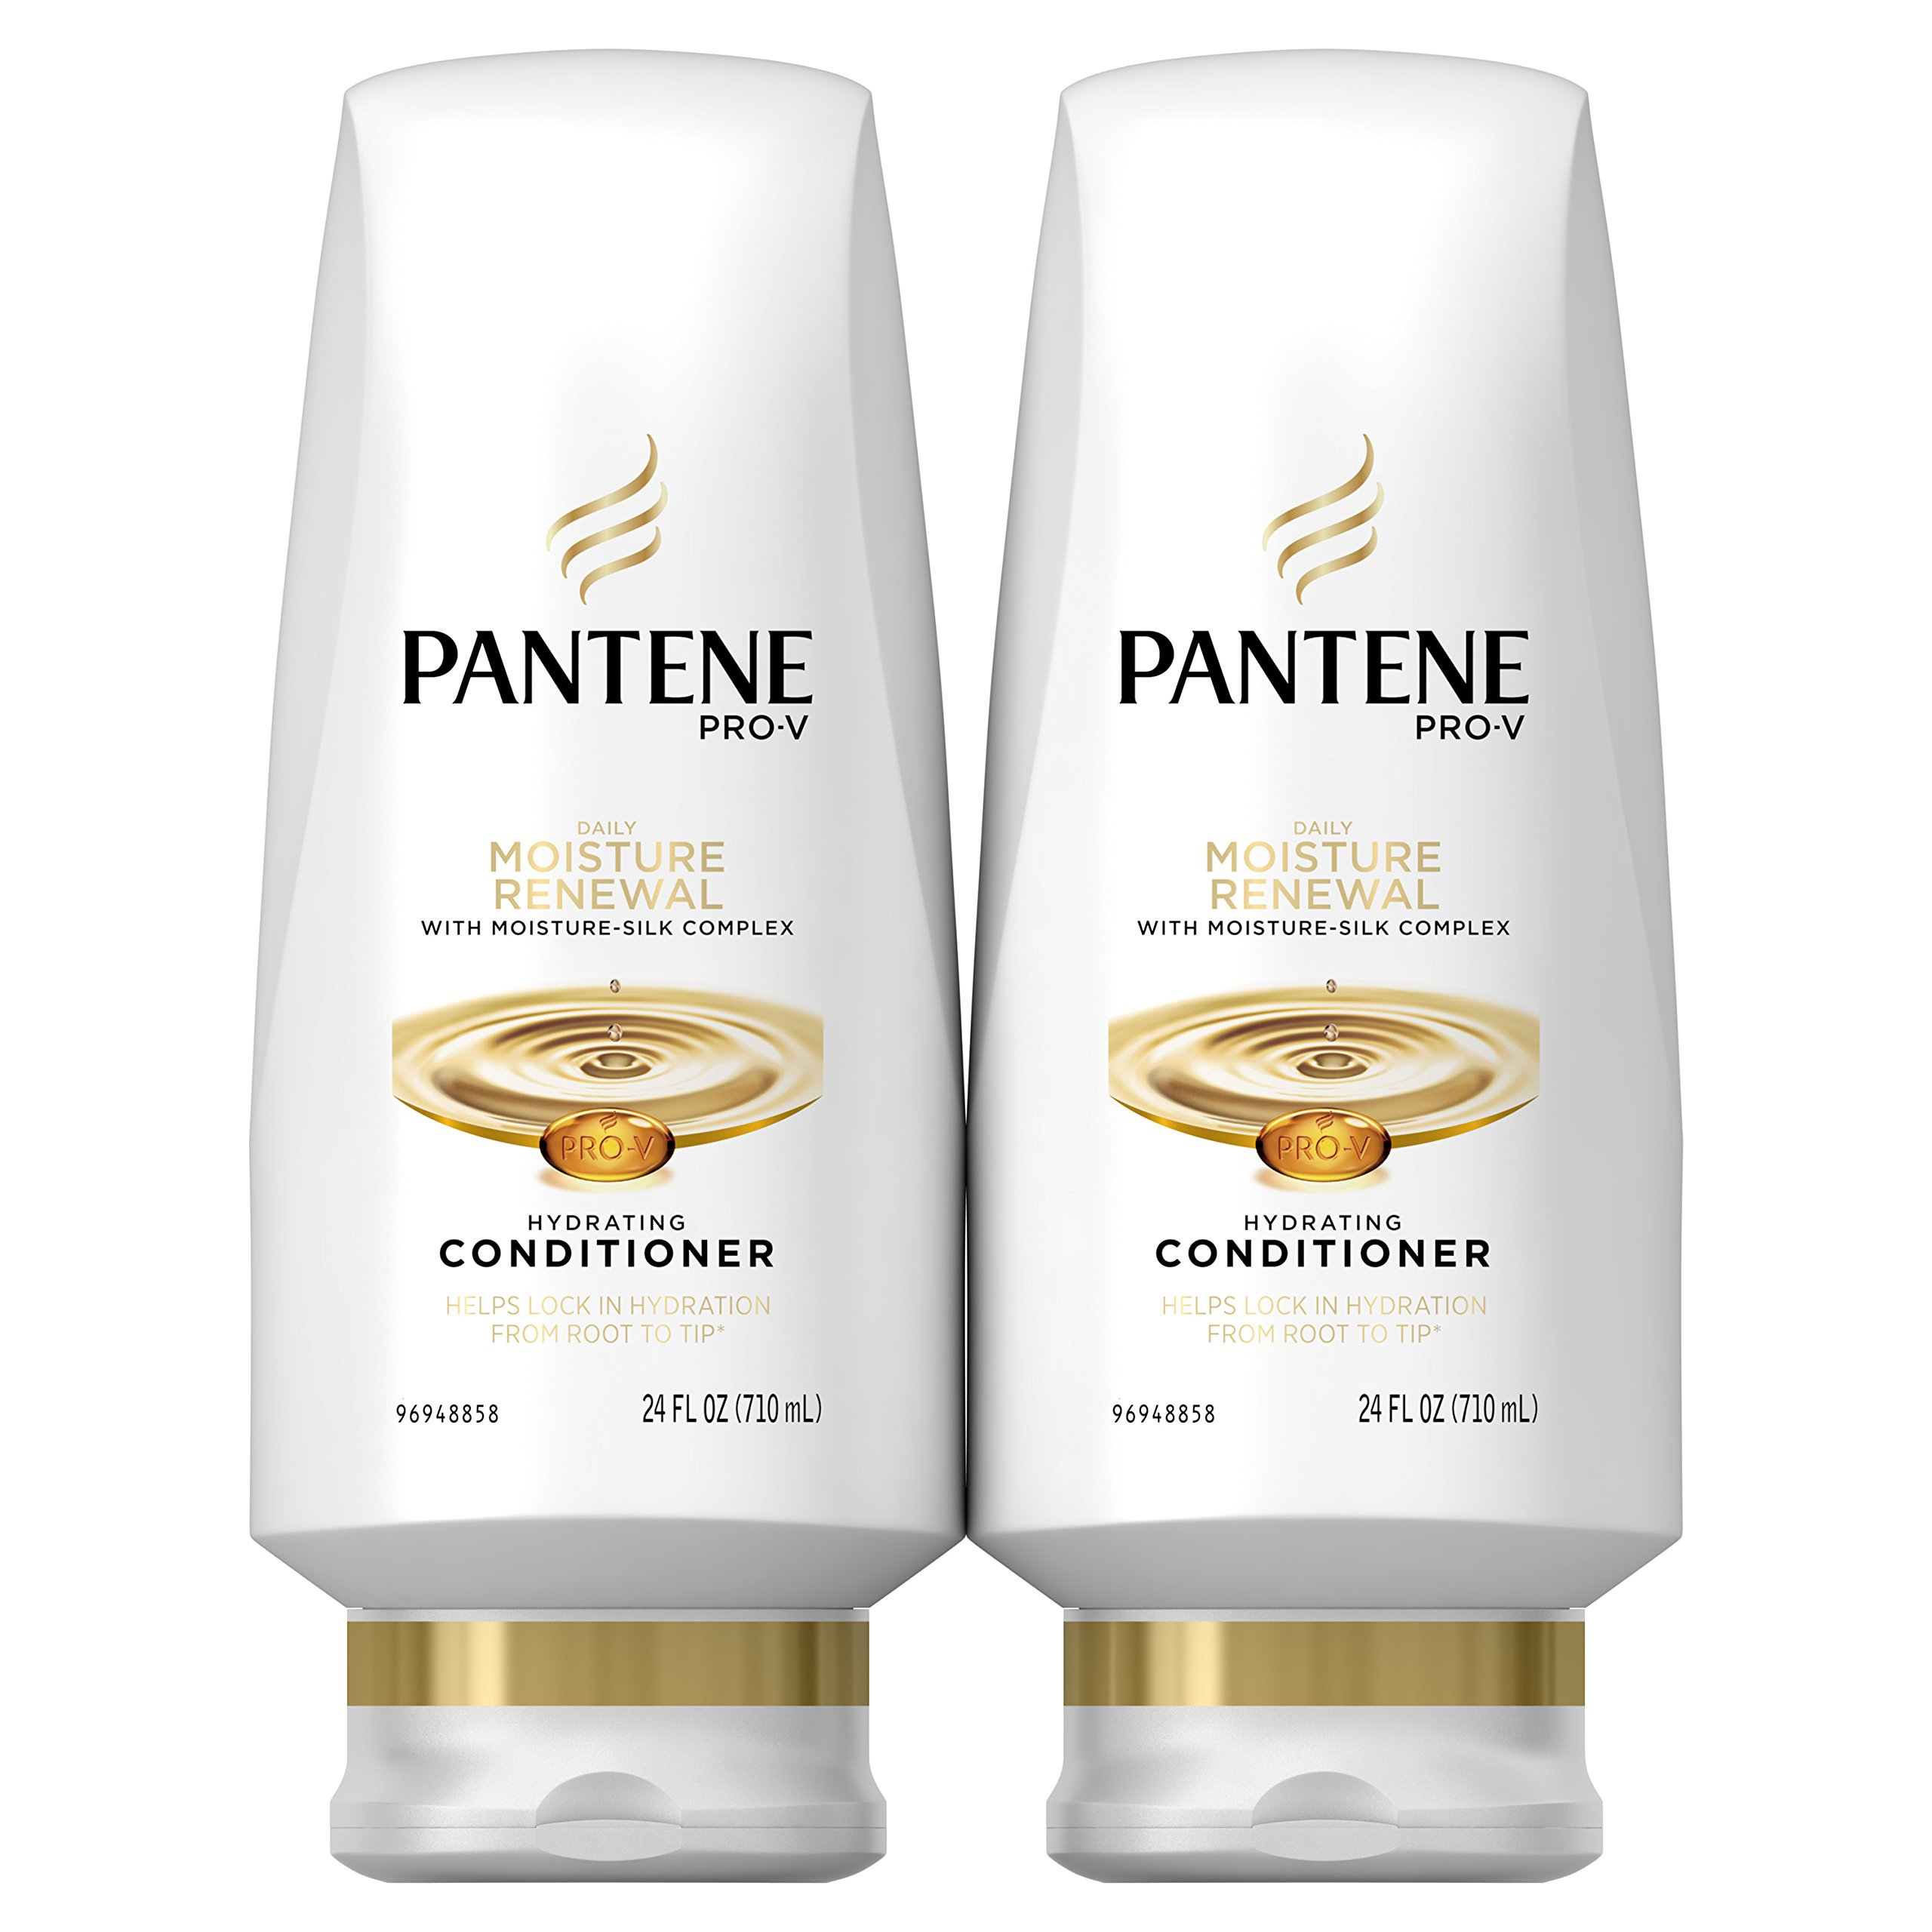 Pantene Moisturizing Conditioner for Dry Hair, Daily Moisture Renewal, 24 Fl Oz (Pack of 2) (Packaging May Vary)